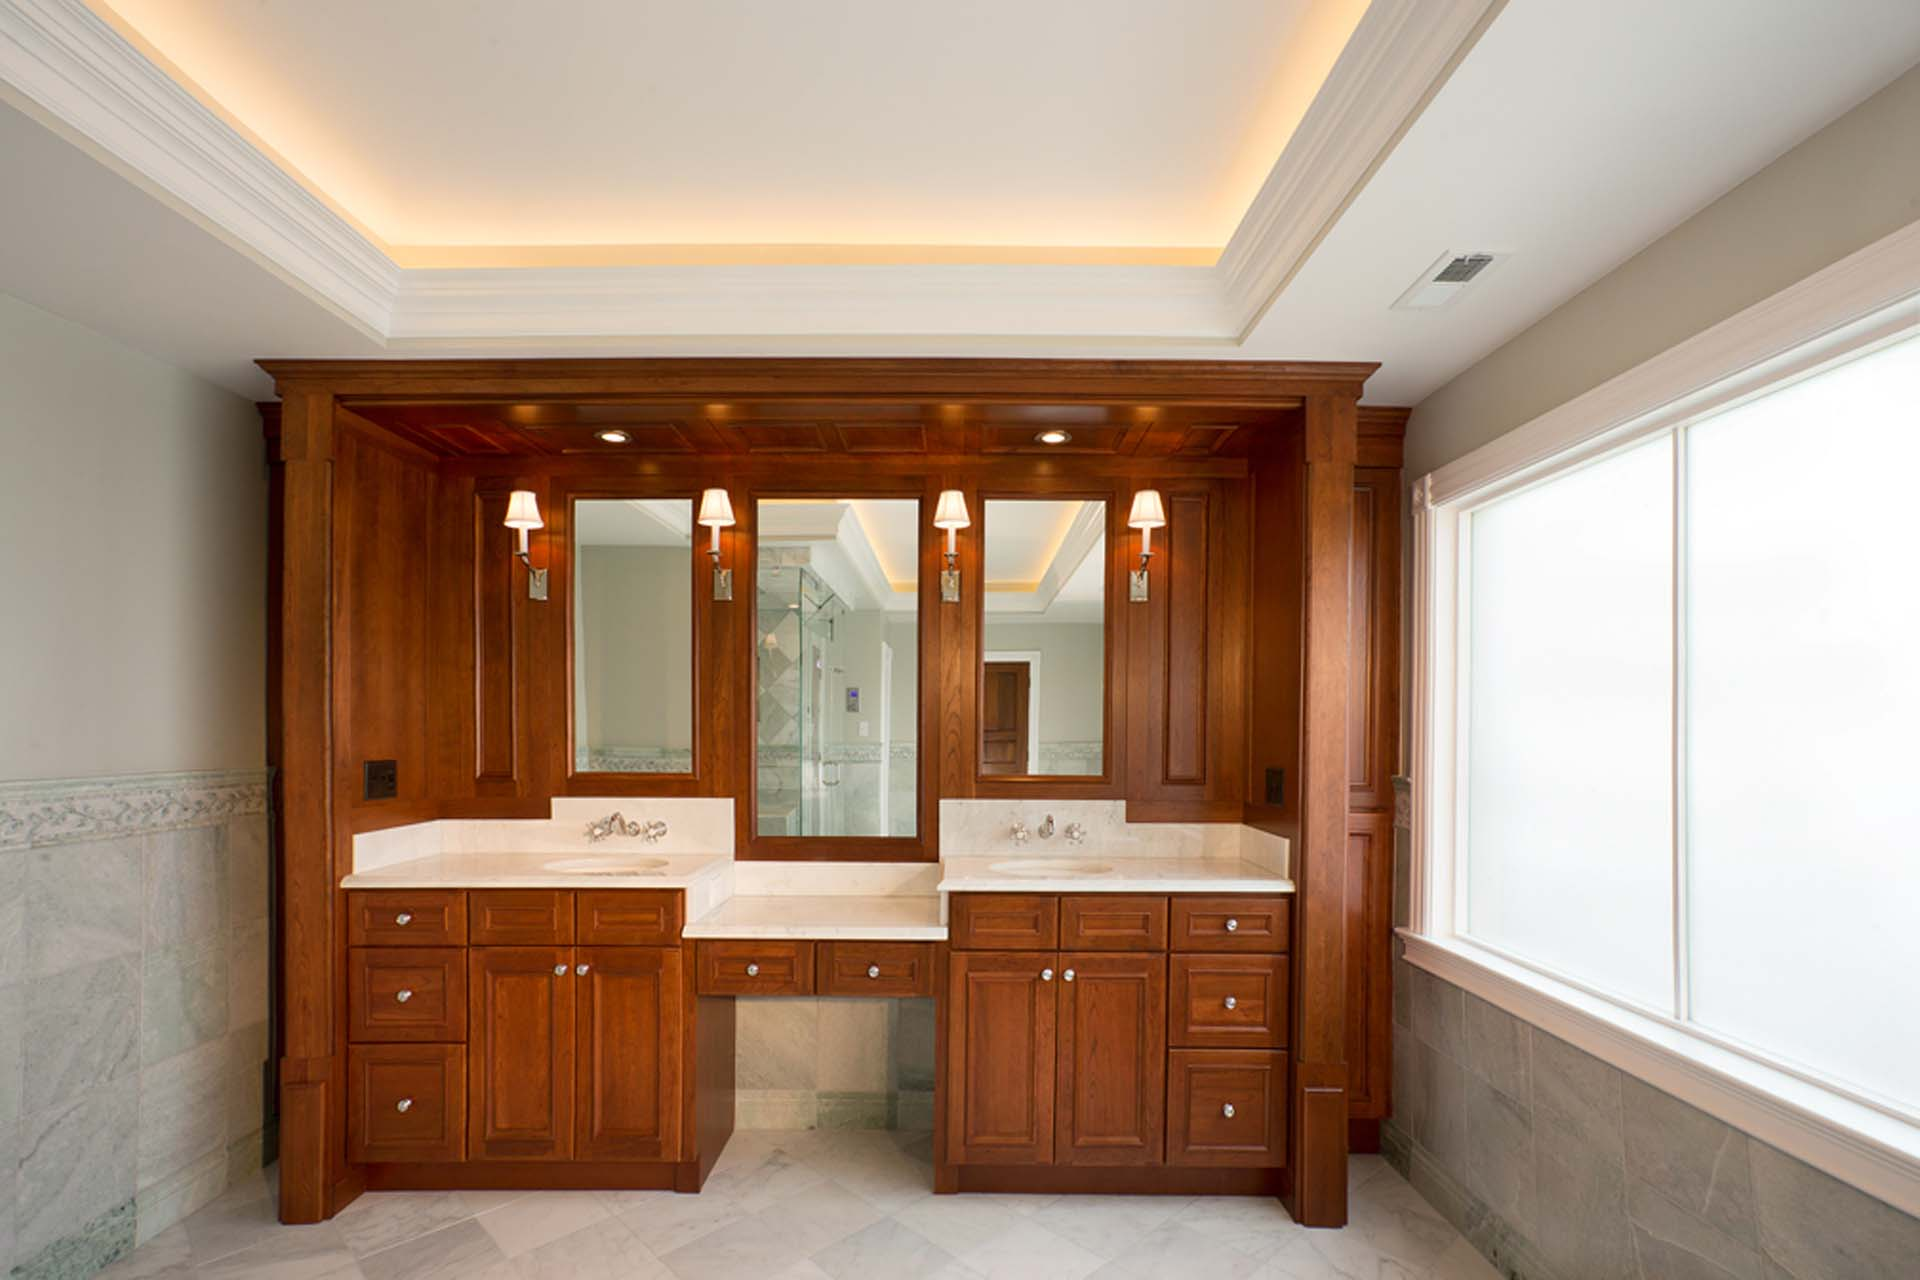 double sink with cabinets